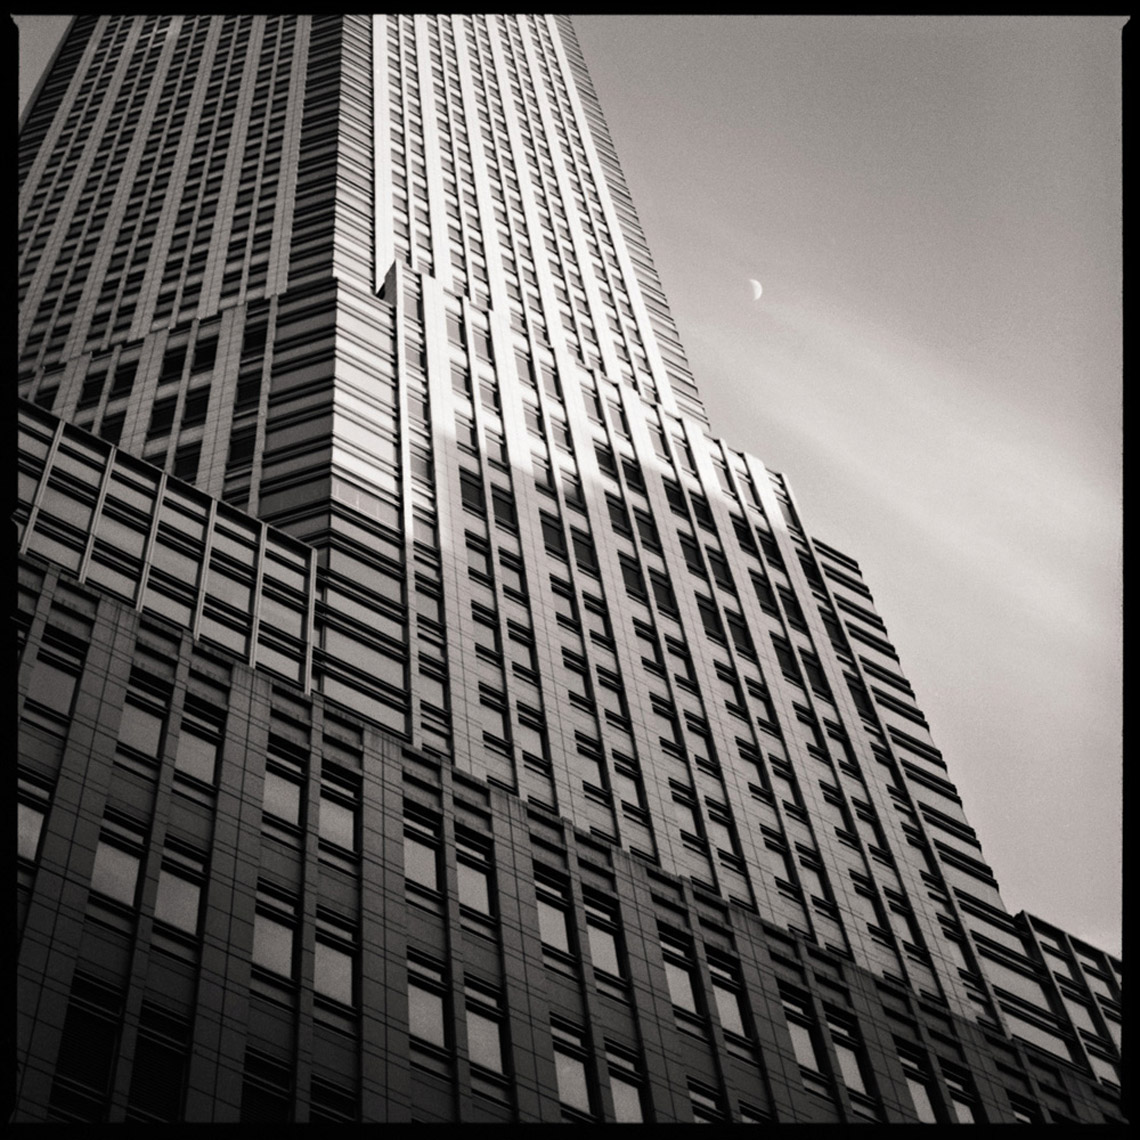 Sean Perry Photographs • JP Morgan Chase, from the series Monolith